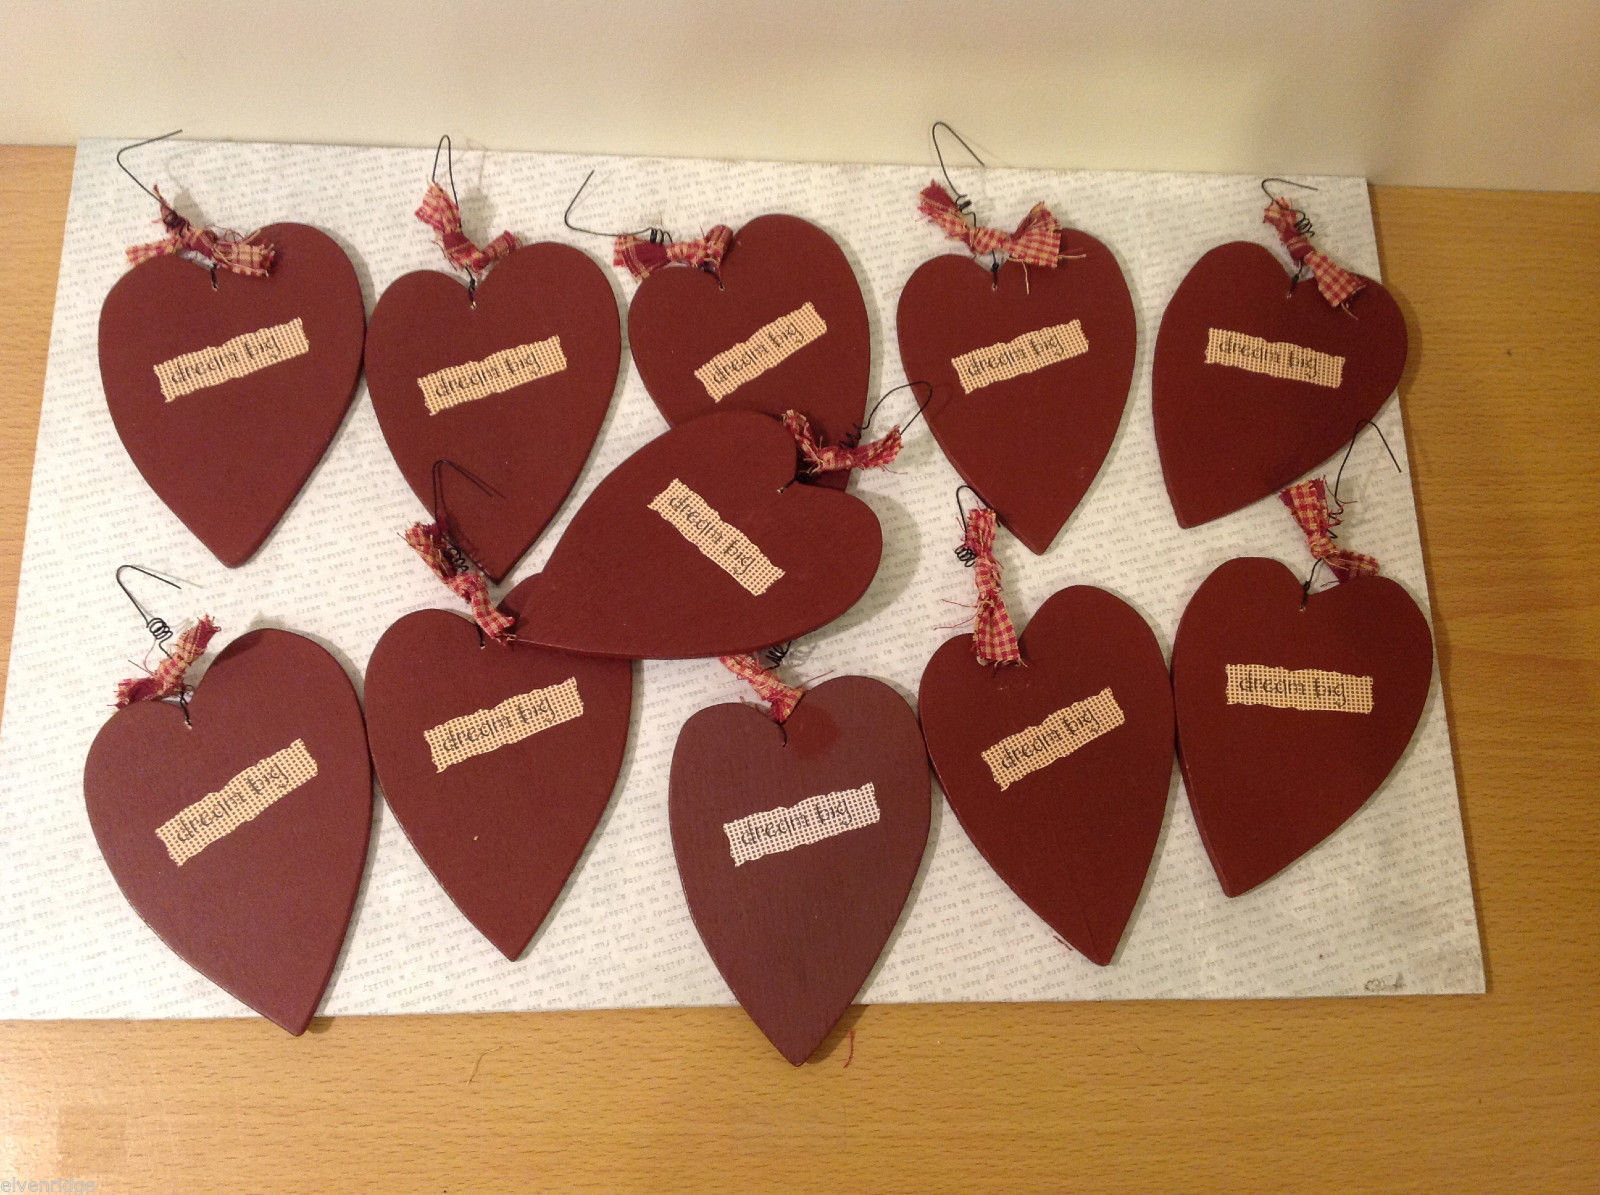 "Set of 11 Wooden Red Heart Tree Ornaments ""DREAM BIG"" with ribbons"